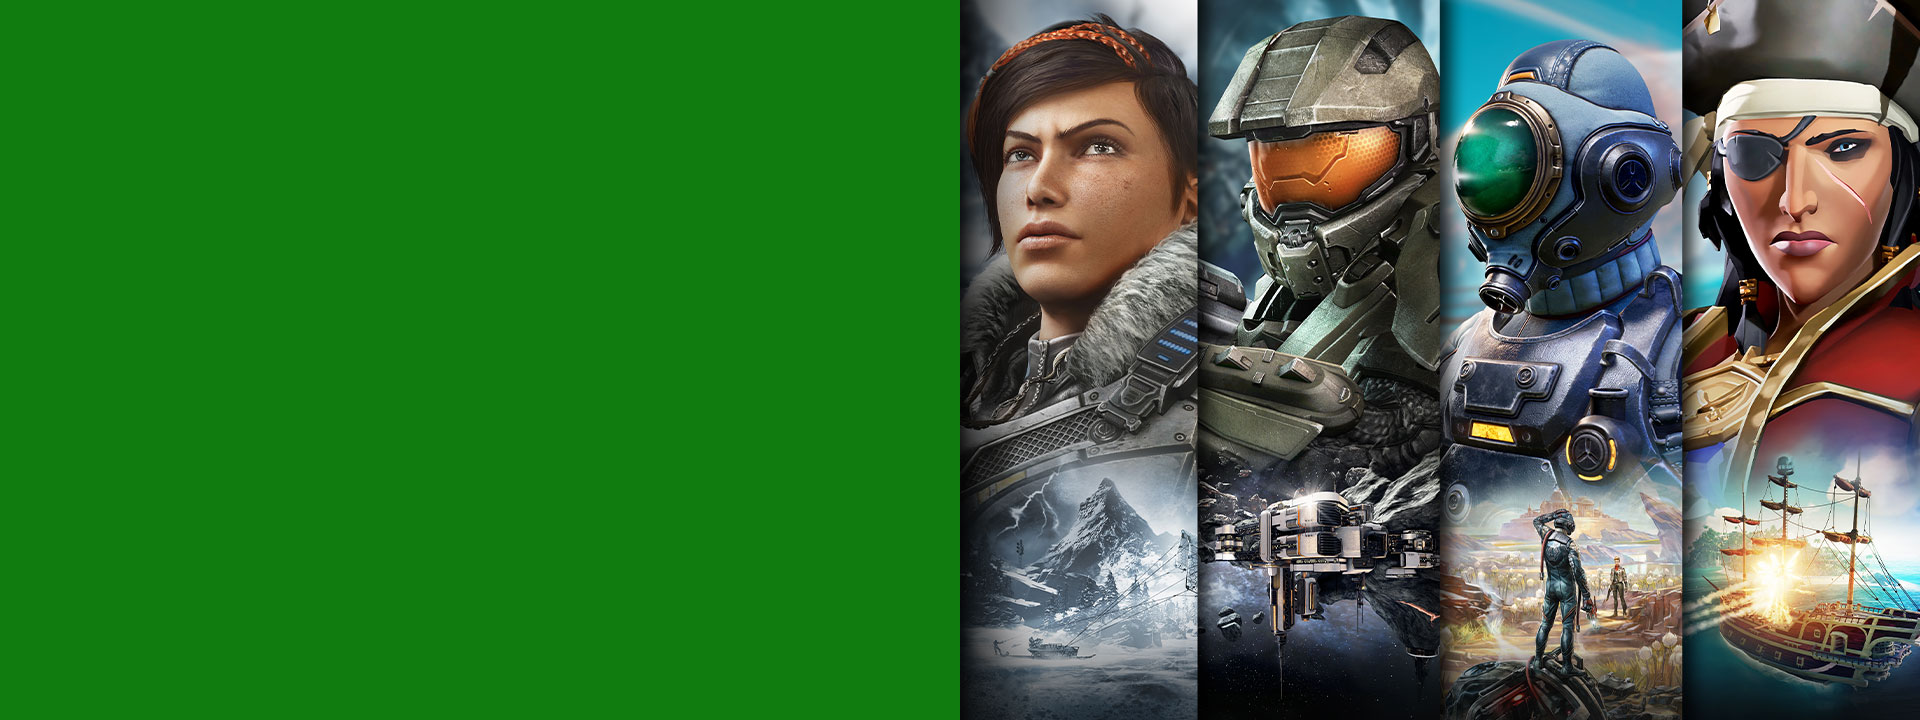 Xbox Game Pass-spilkarakterer fra Gears 5, Halo, The Outer Worlds og Sea of Thieves.